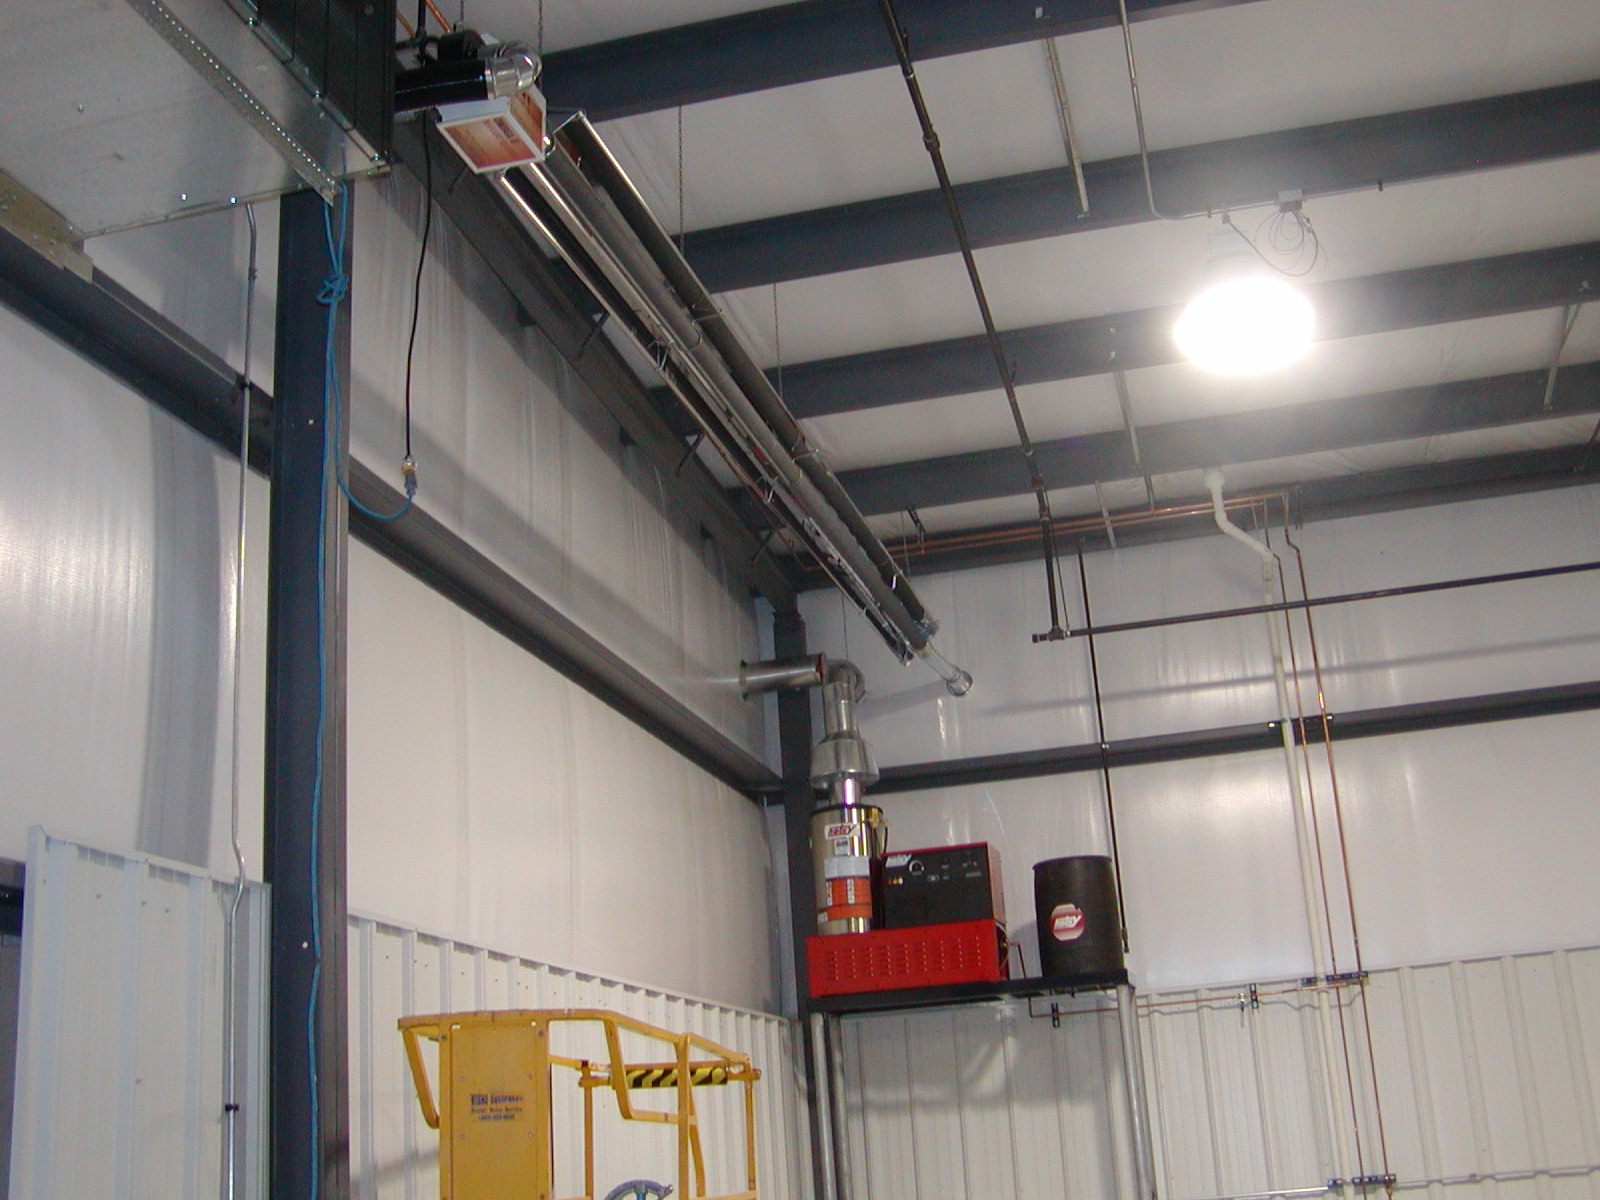 Warehouses Bishop Radiant Heating Systems